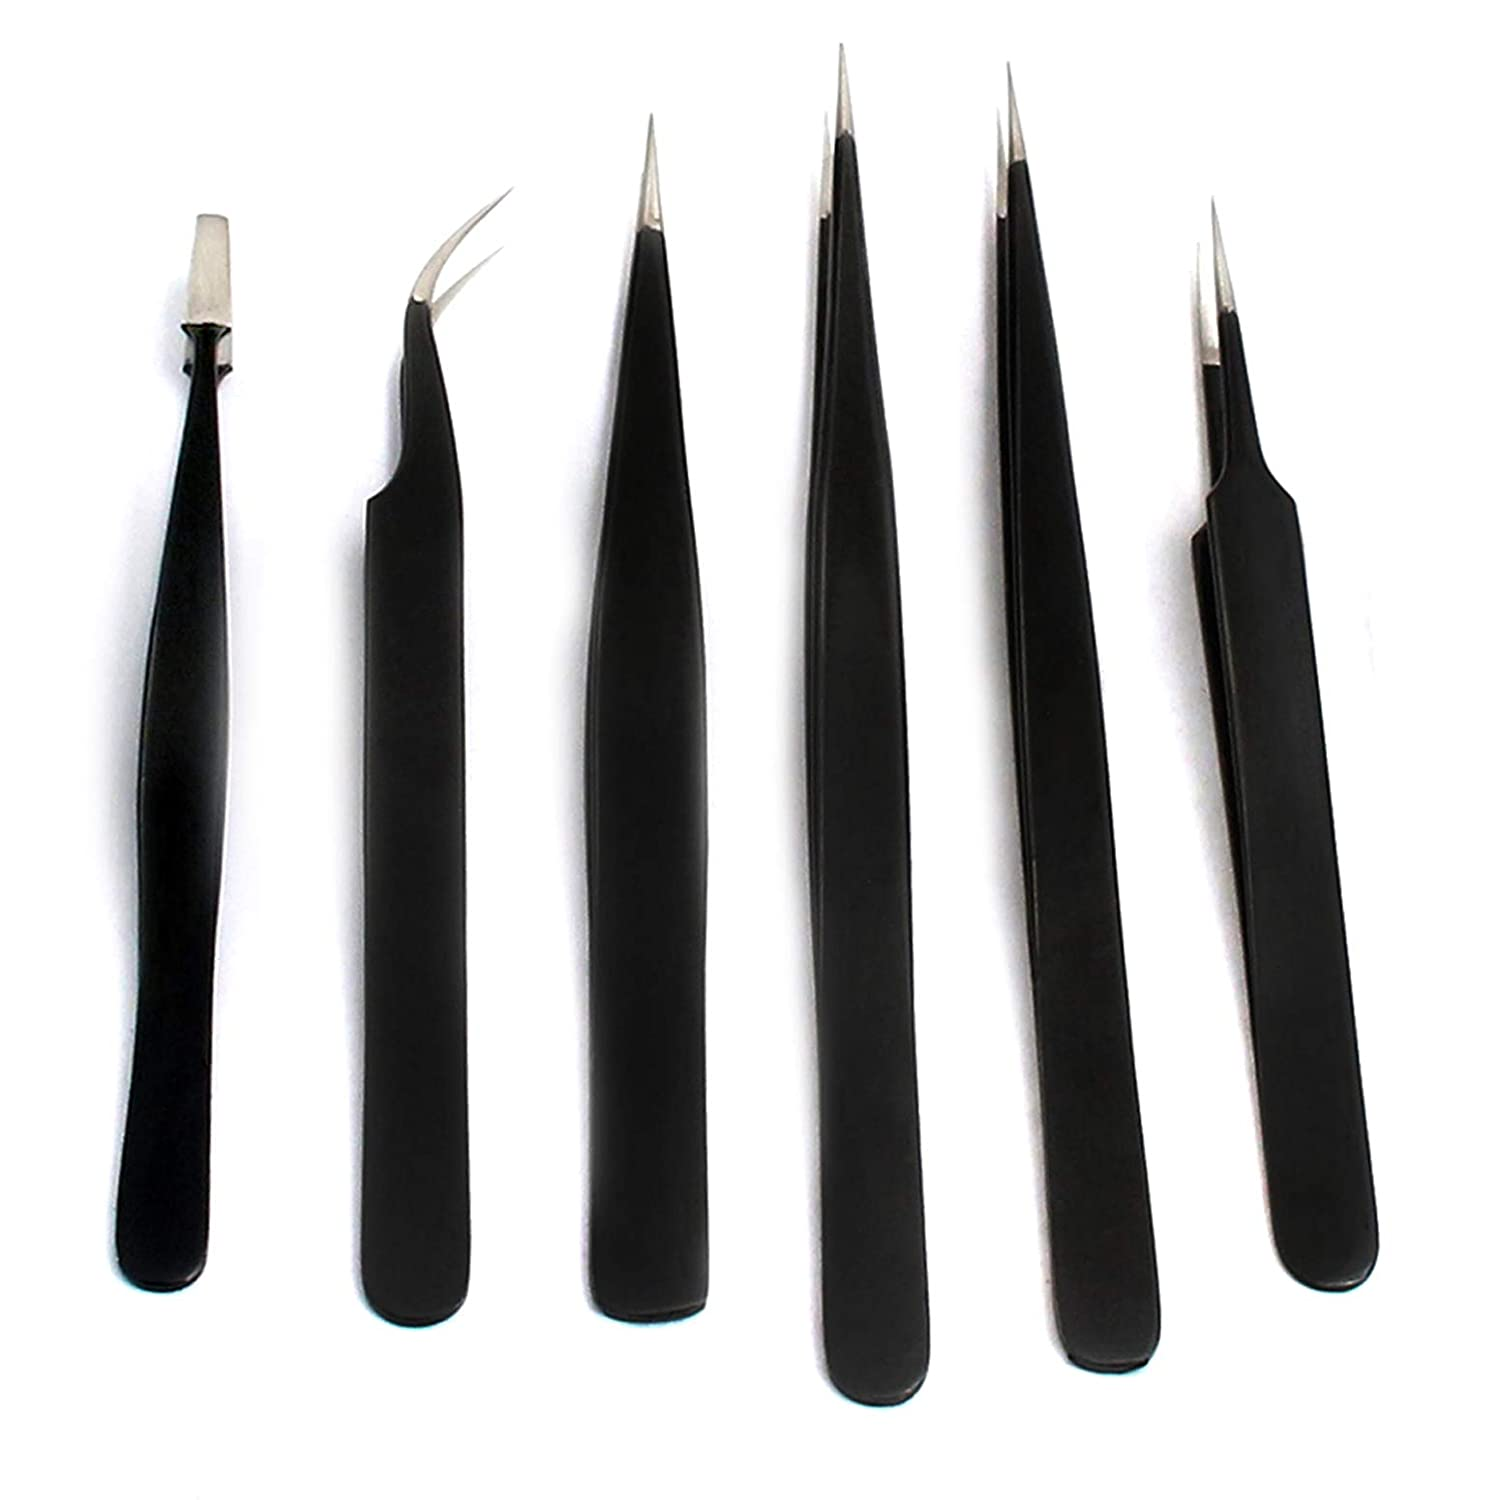 AAProTools 6PCS Precision Anti-Static Tweezers Stainless Steel Tweezer Maintenance Tool for Electronics, Jewelry-Making, Laboratory Work, Repairing, Make up, Nail Art